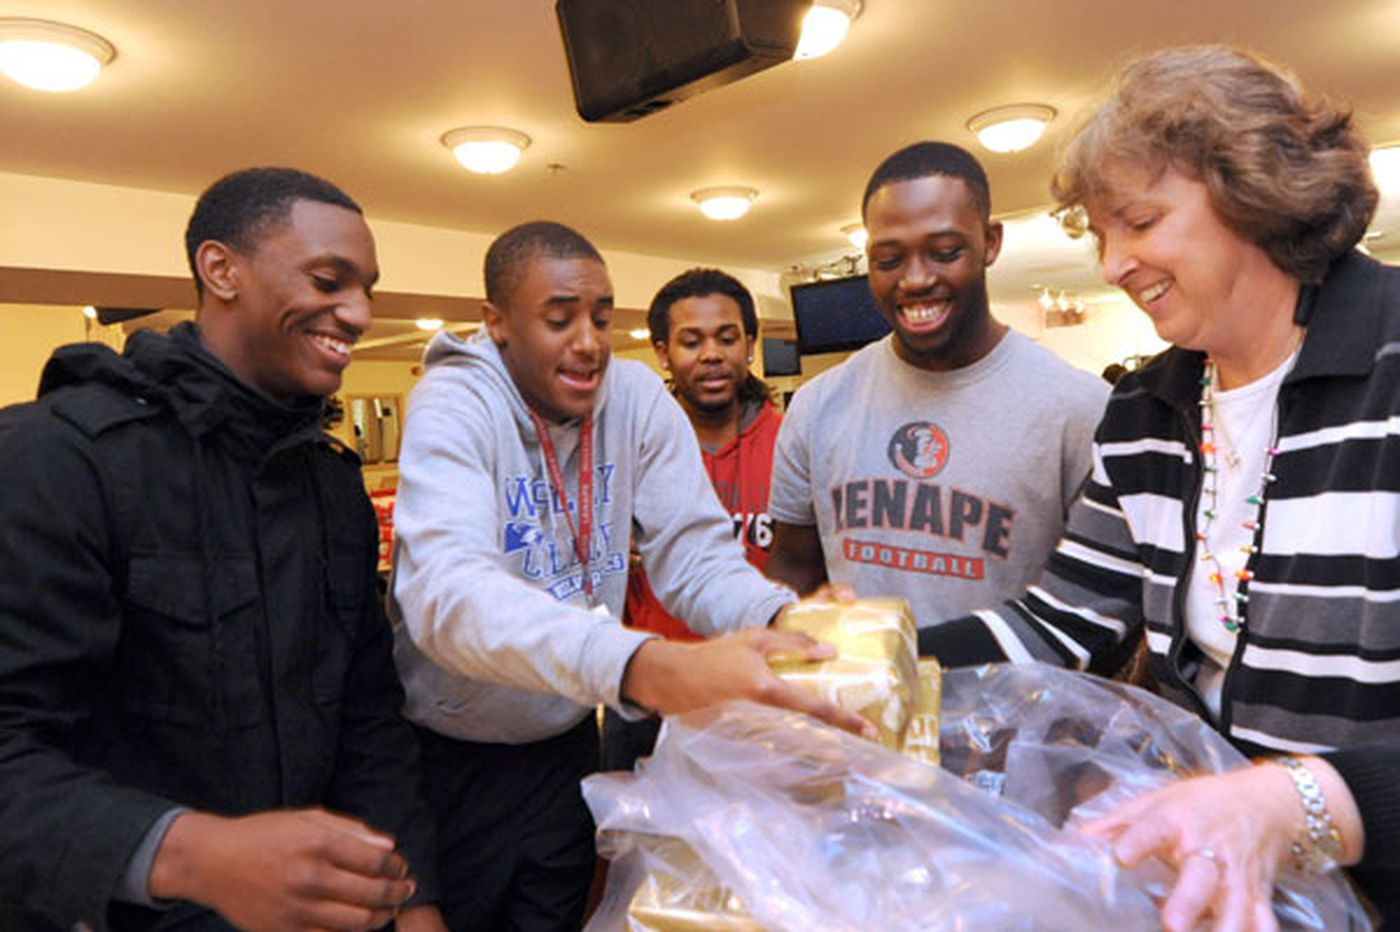 Kevin Riordan: Volunteers make the holidays bright for South Jersey families affected by AIDS